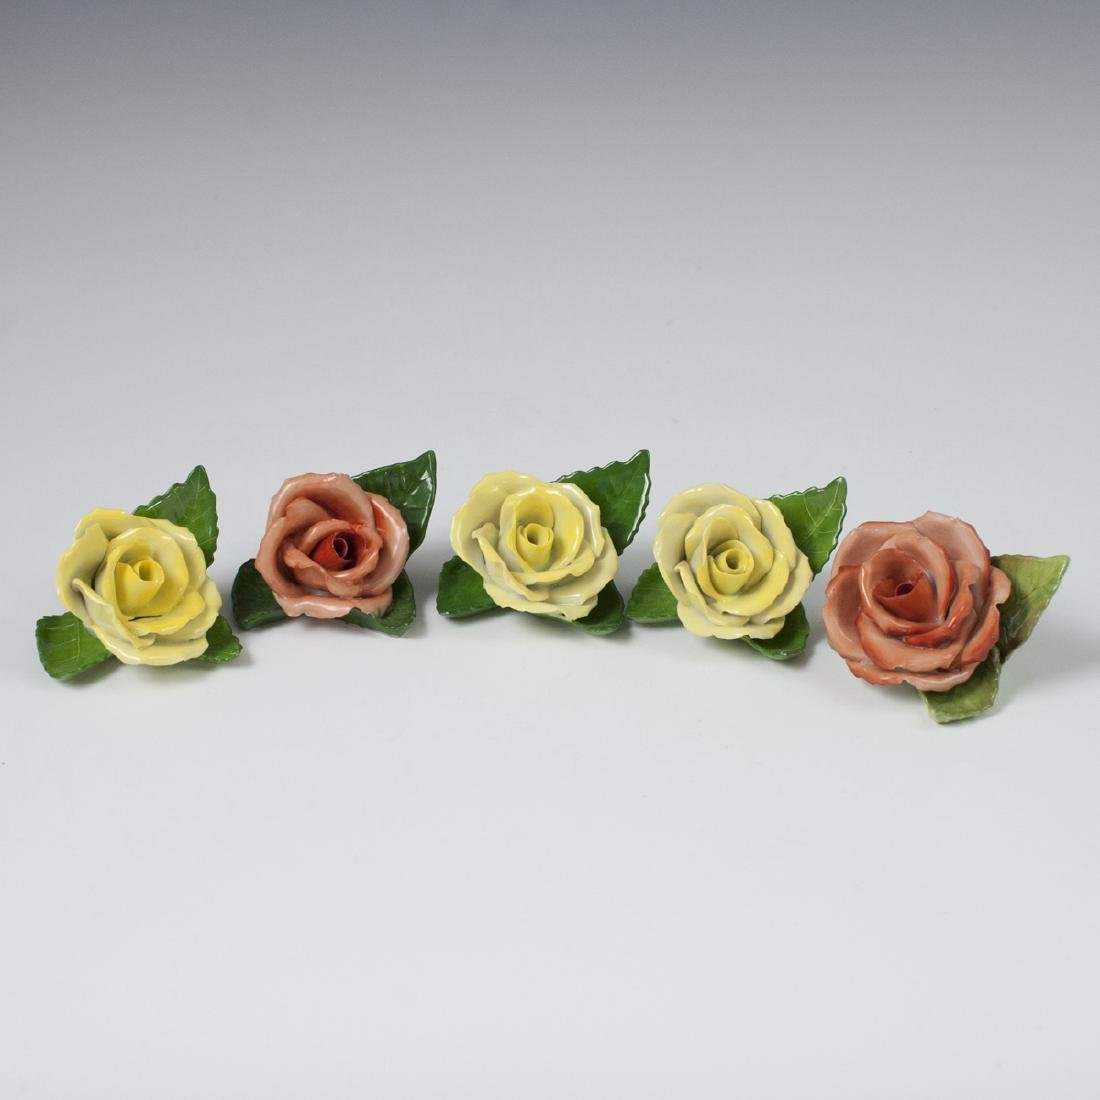 Herend Porcelain Rose Place Card Holders